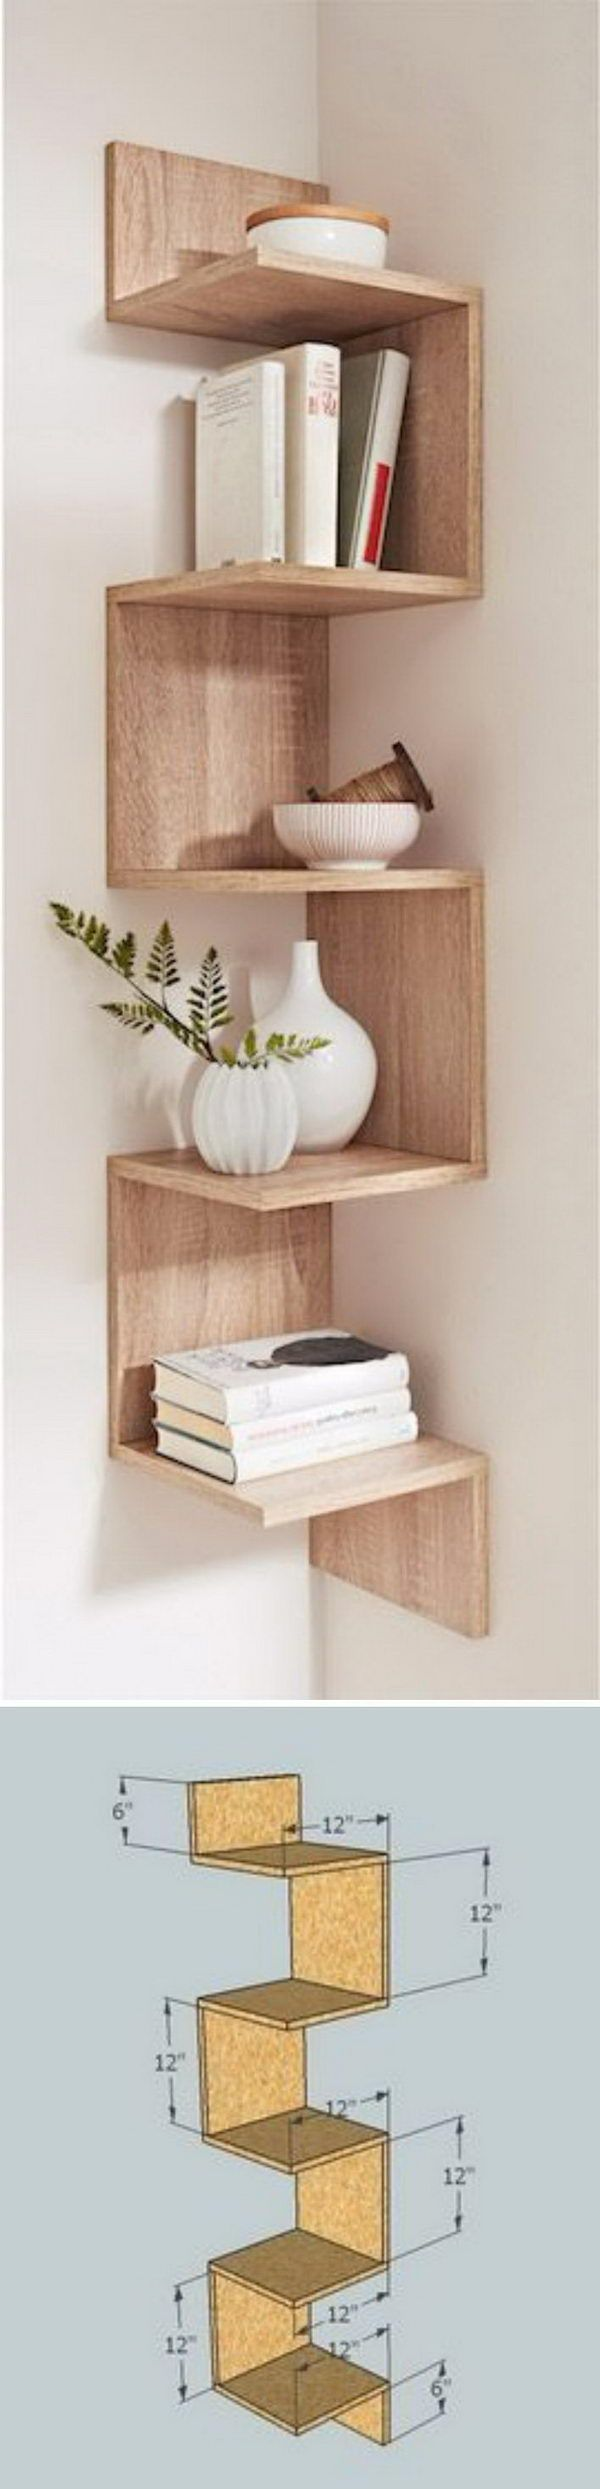 Corner Shelf Made of Plywood